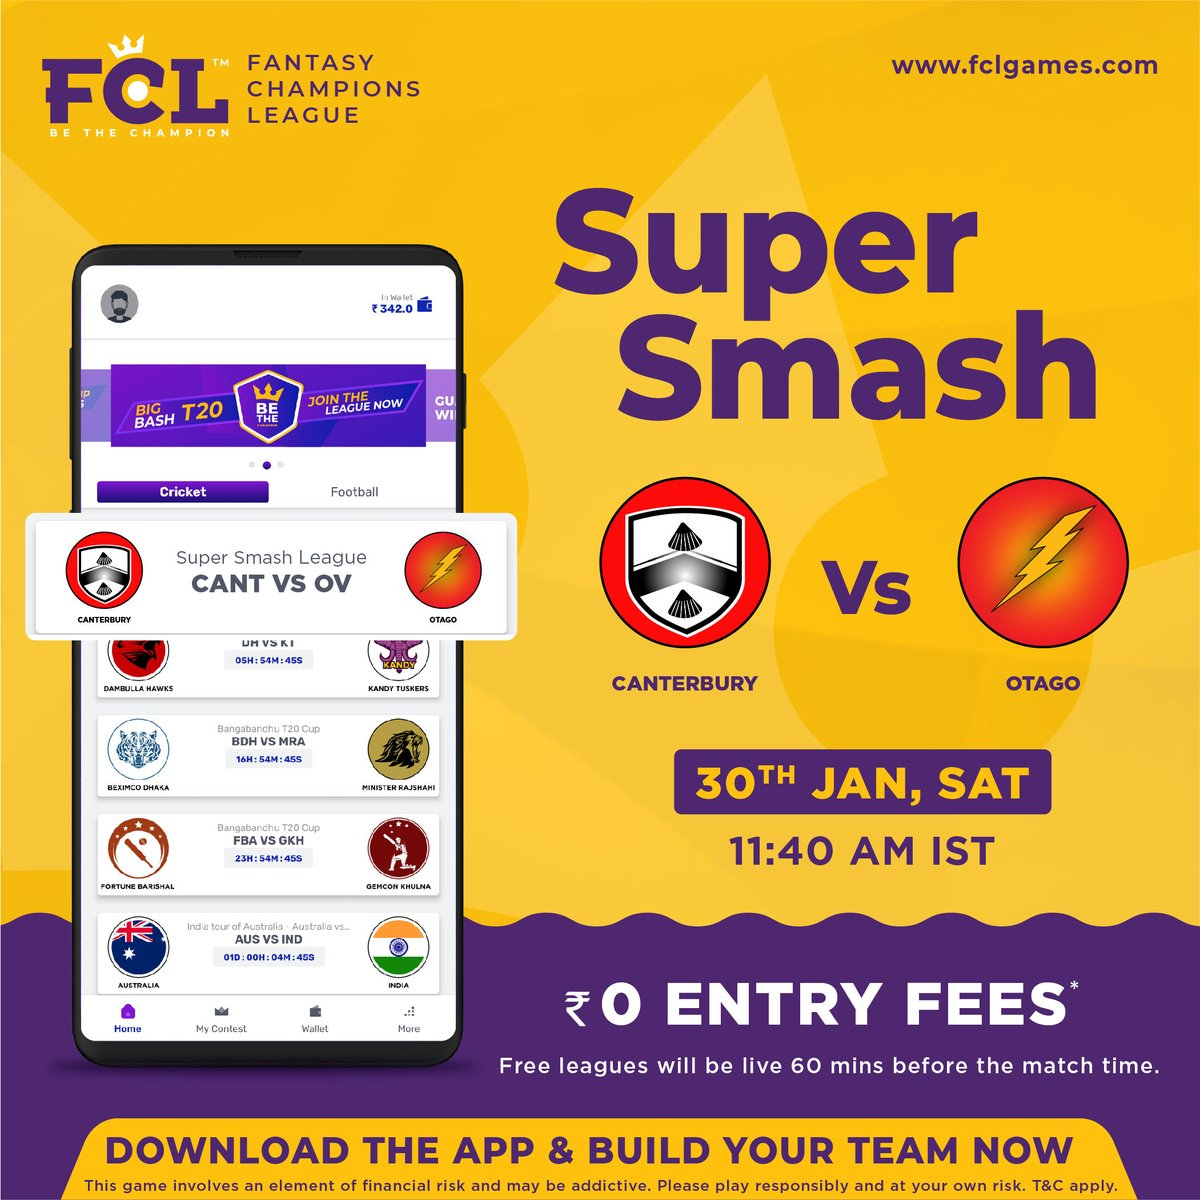 Build your Team now in Big Bash T20 League. Download the APP now from  & get a sign-up bonus of Rs. 200 (limited period offer). . . . . #fcl #fclgames #fantasygames #cricketfever #cricket #bethechampion #fantasycricketapp #supersmash